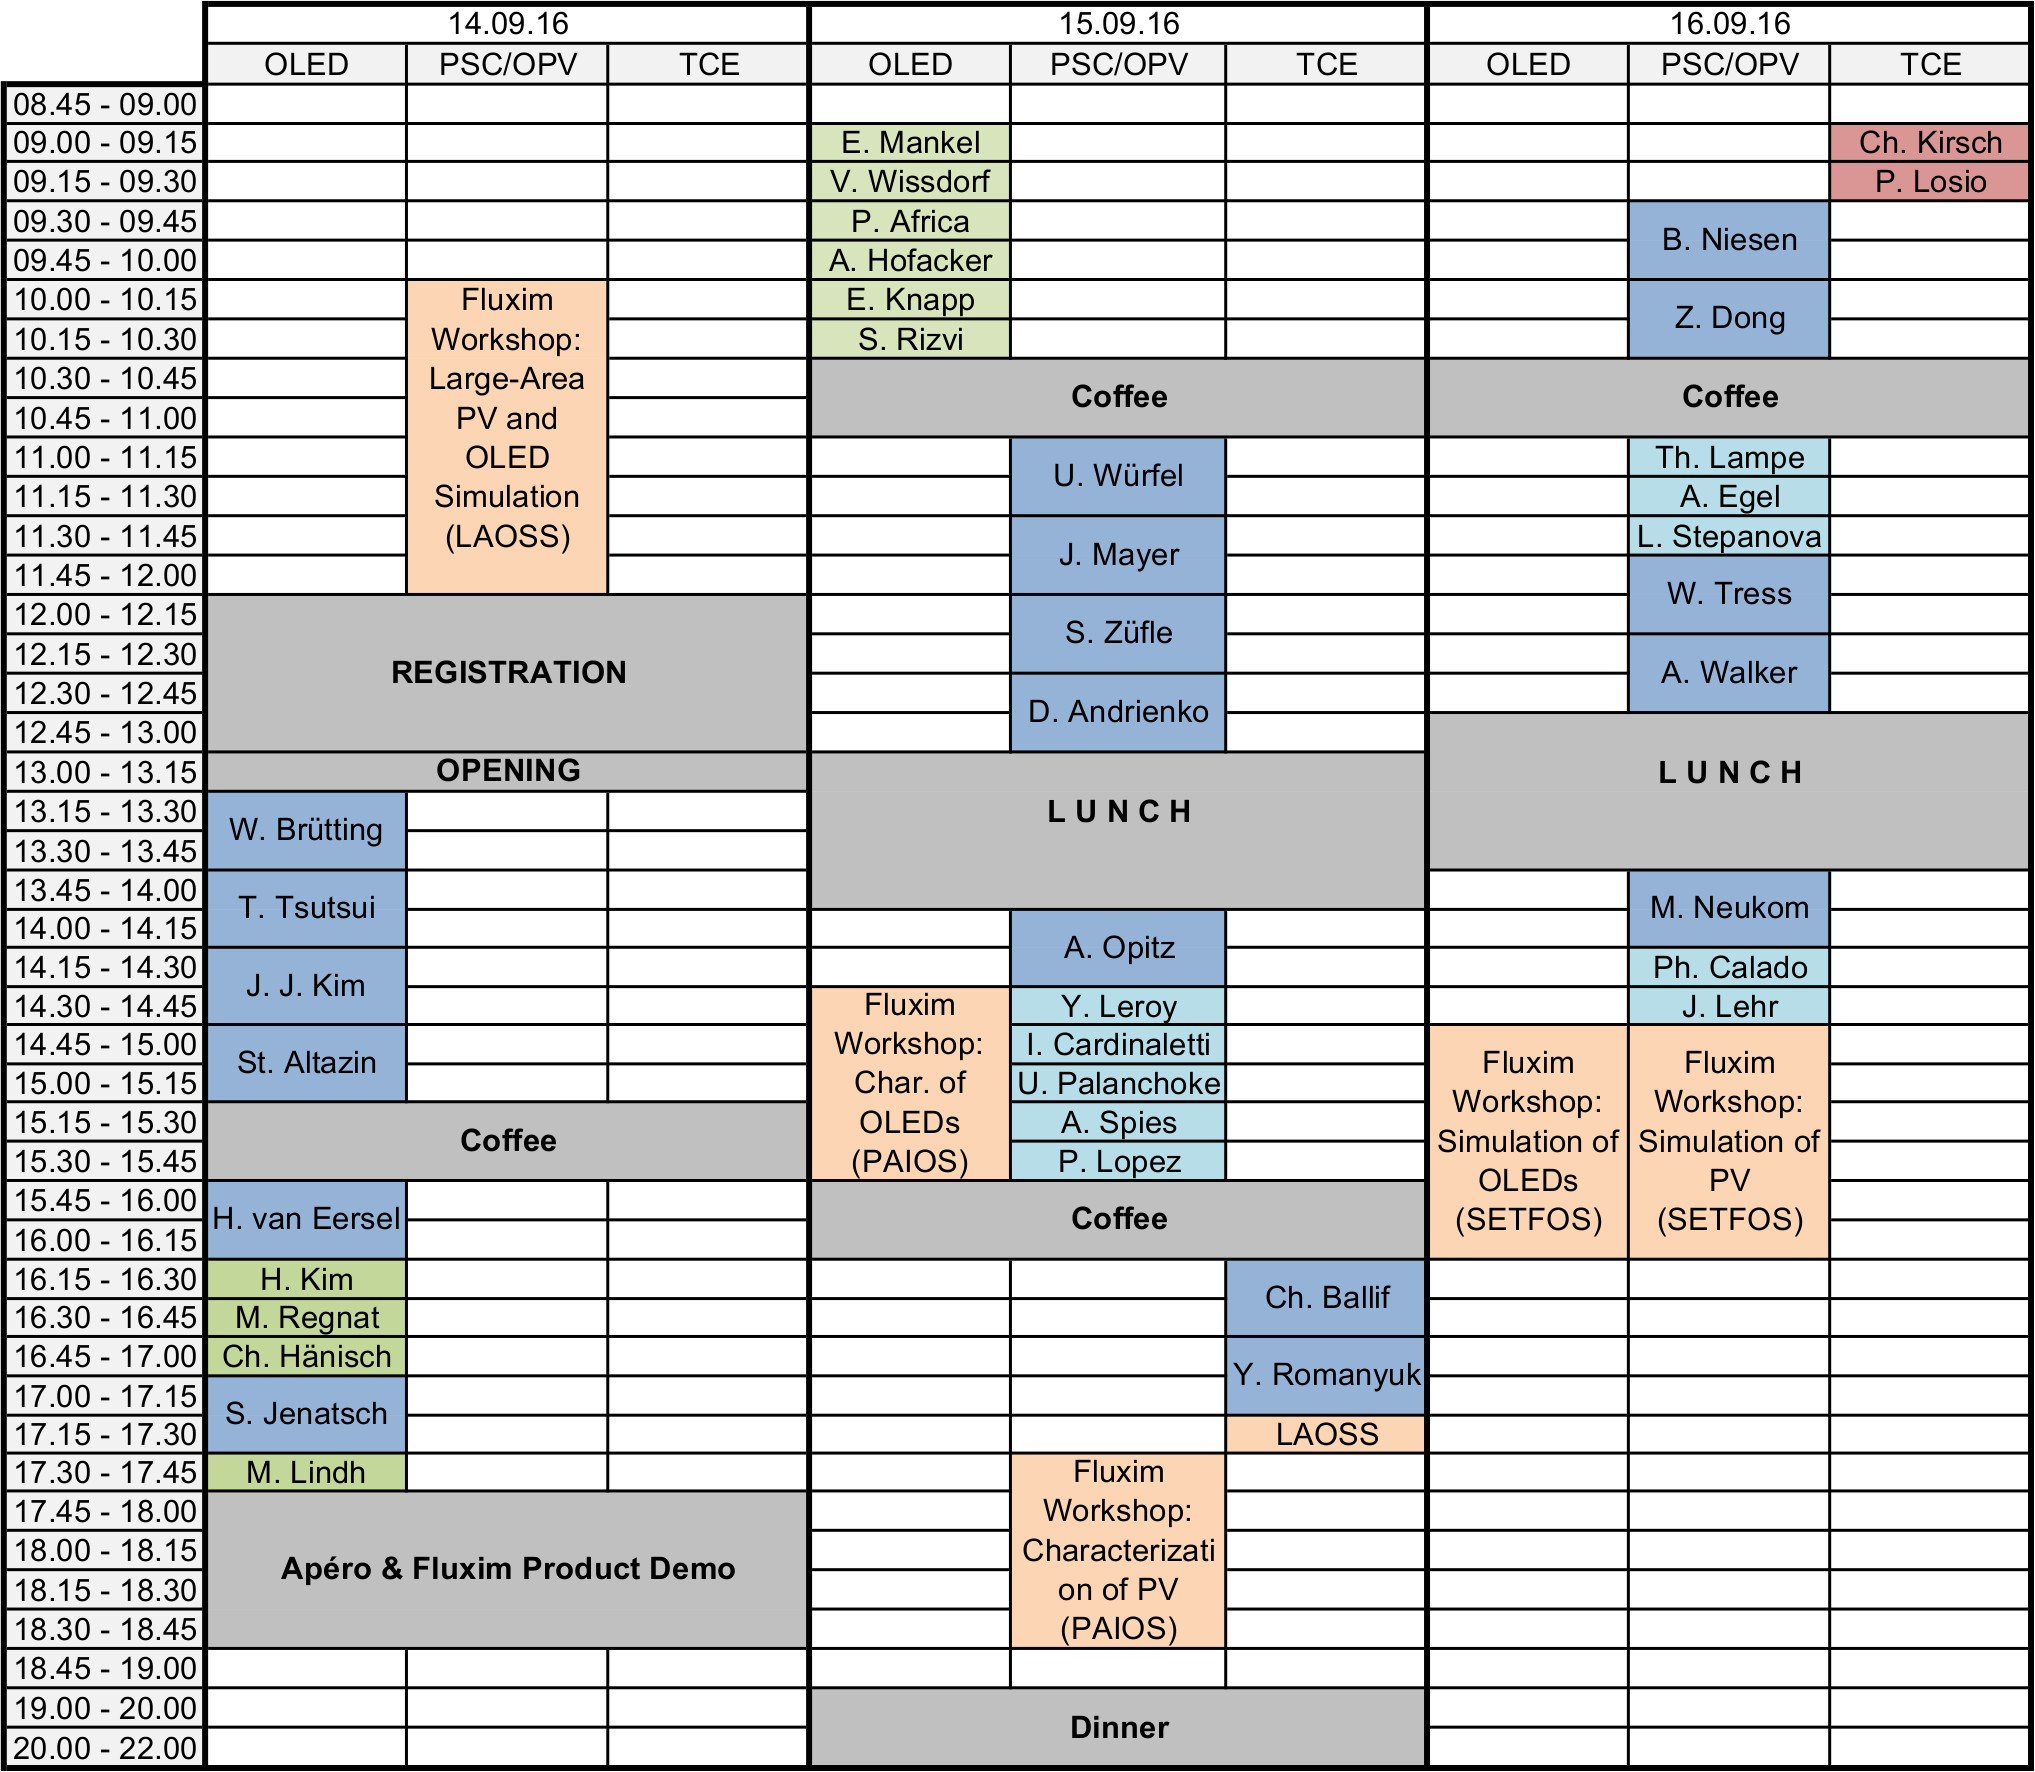 The picture shows an Excel Table with the detailled program at every hour during the conference days.